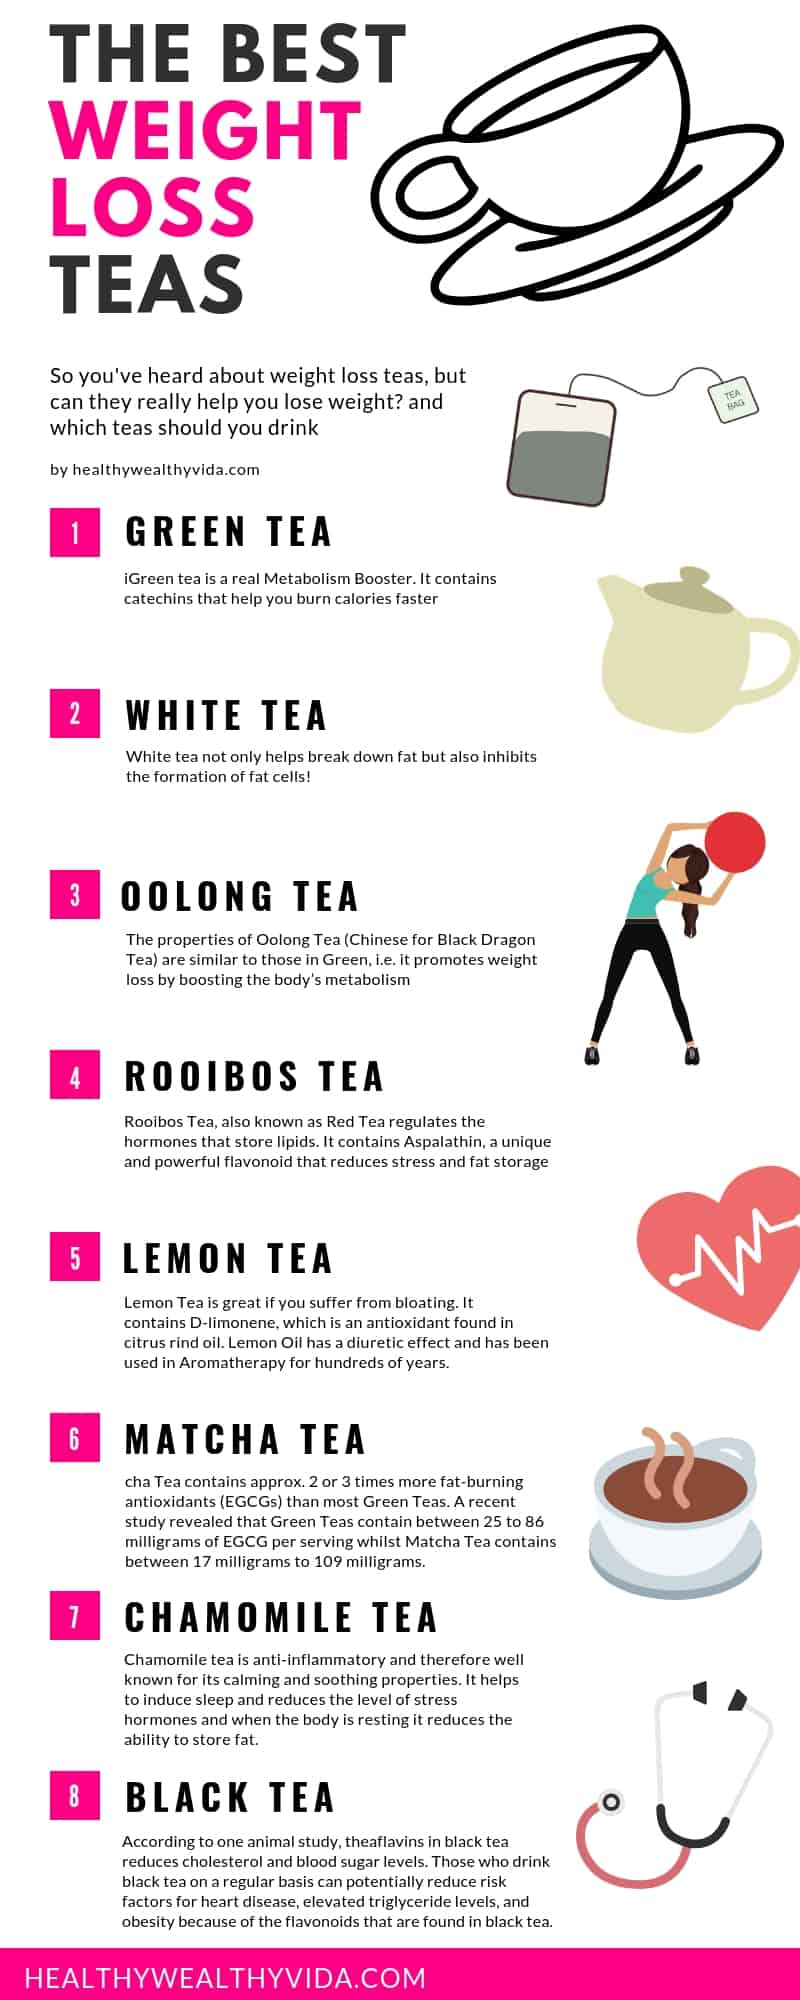 The-best-WEIGHT-LOSS-TEAS-infographic-plaza